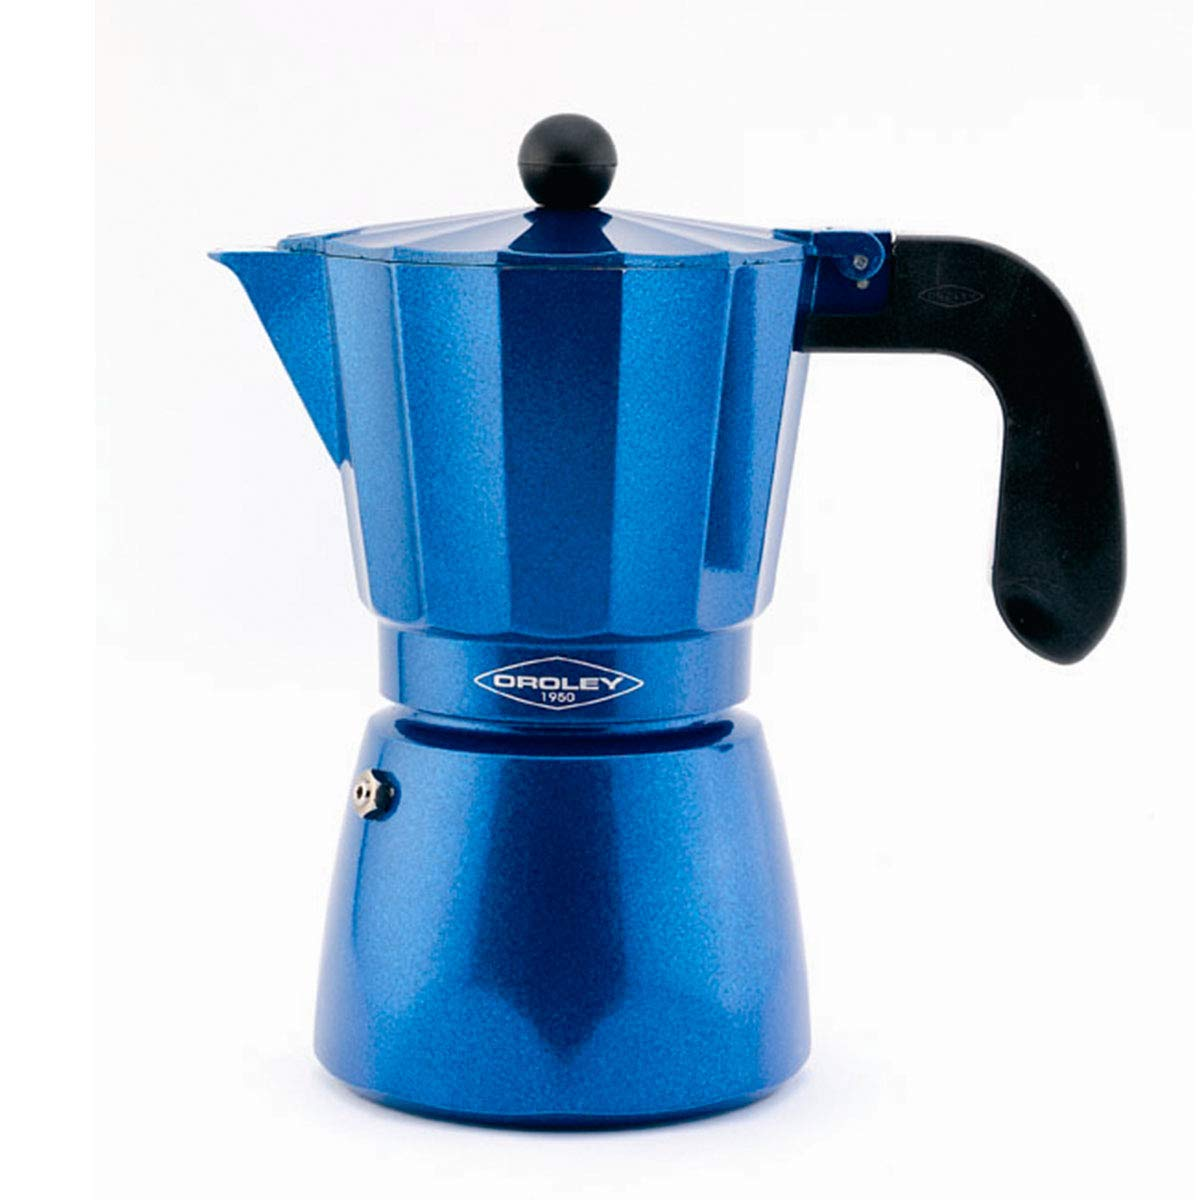 Oroley - Cafetera Italiana Inducción Blue Induction para Todo tipo ...